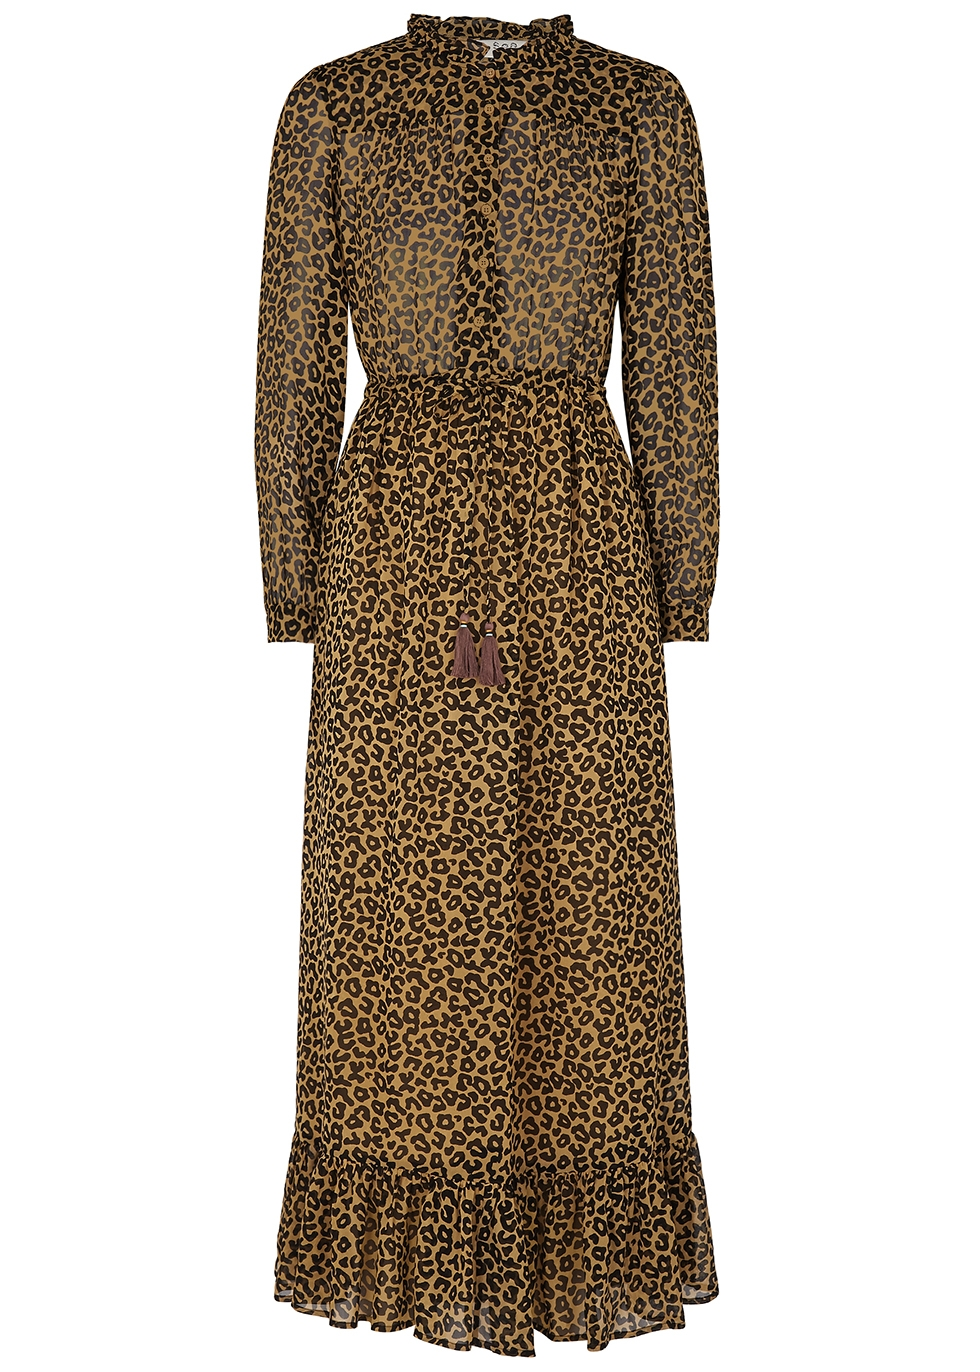 SEA NY Lottie Leopard-Print Georgette Dress